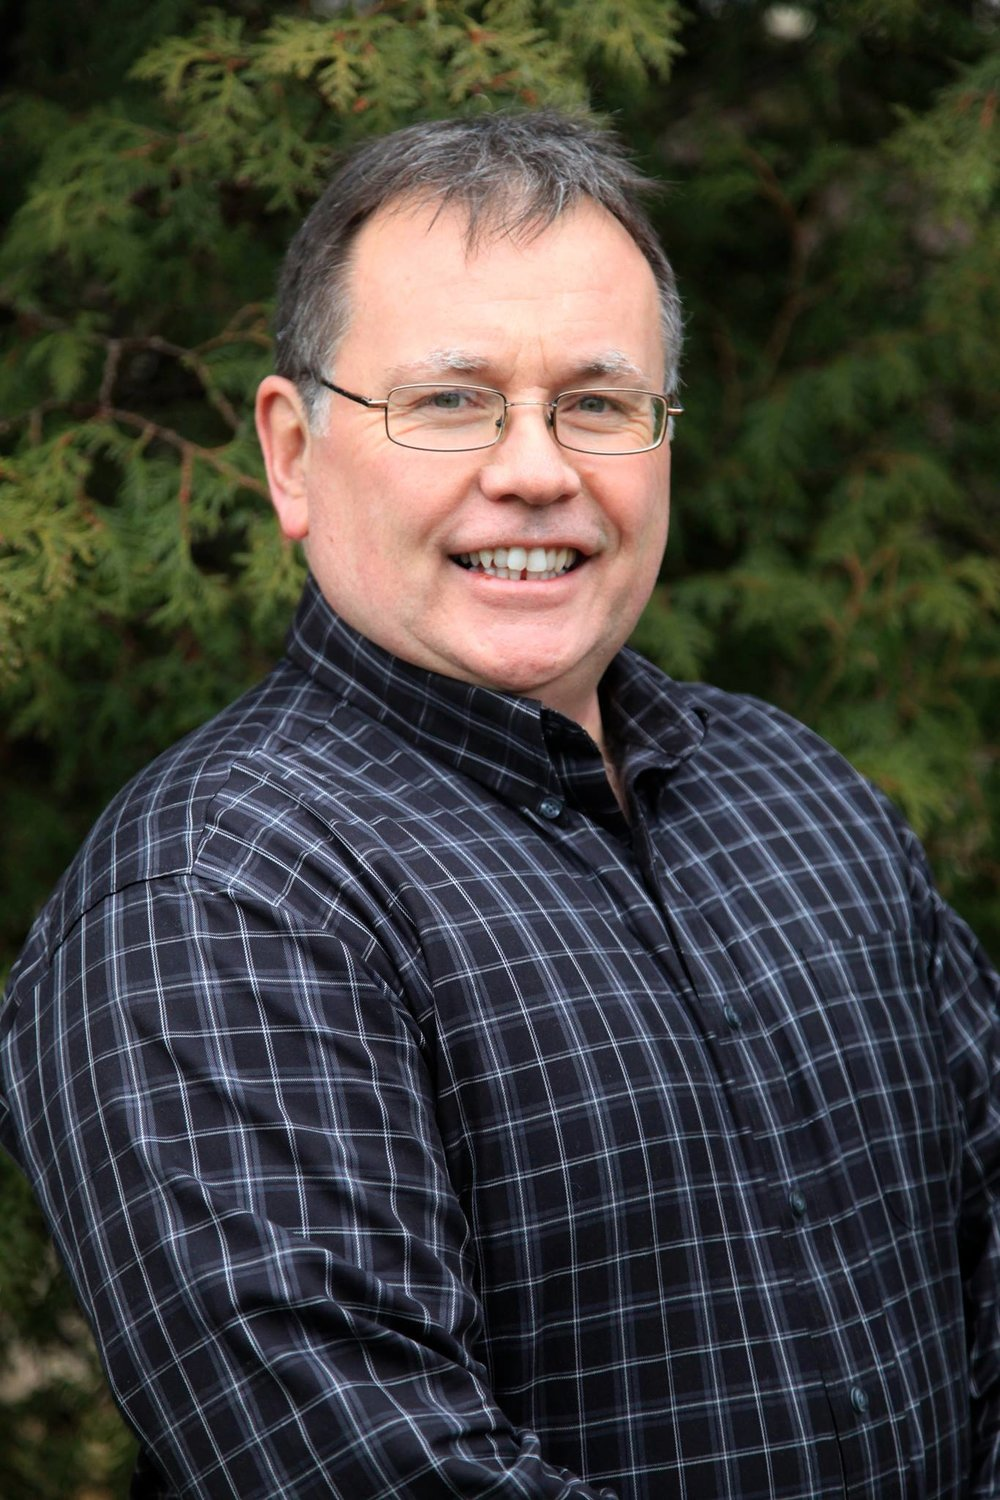 Jim Gordon, author, speaker, pastor